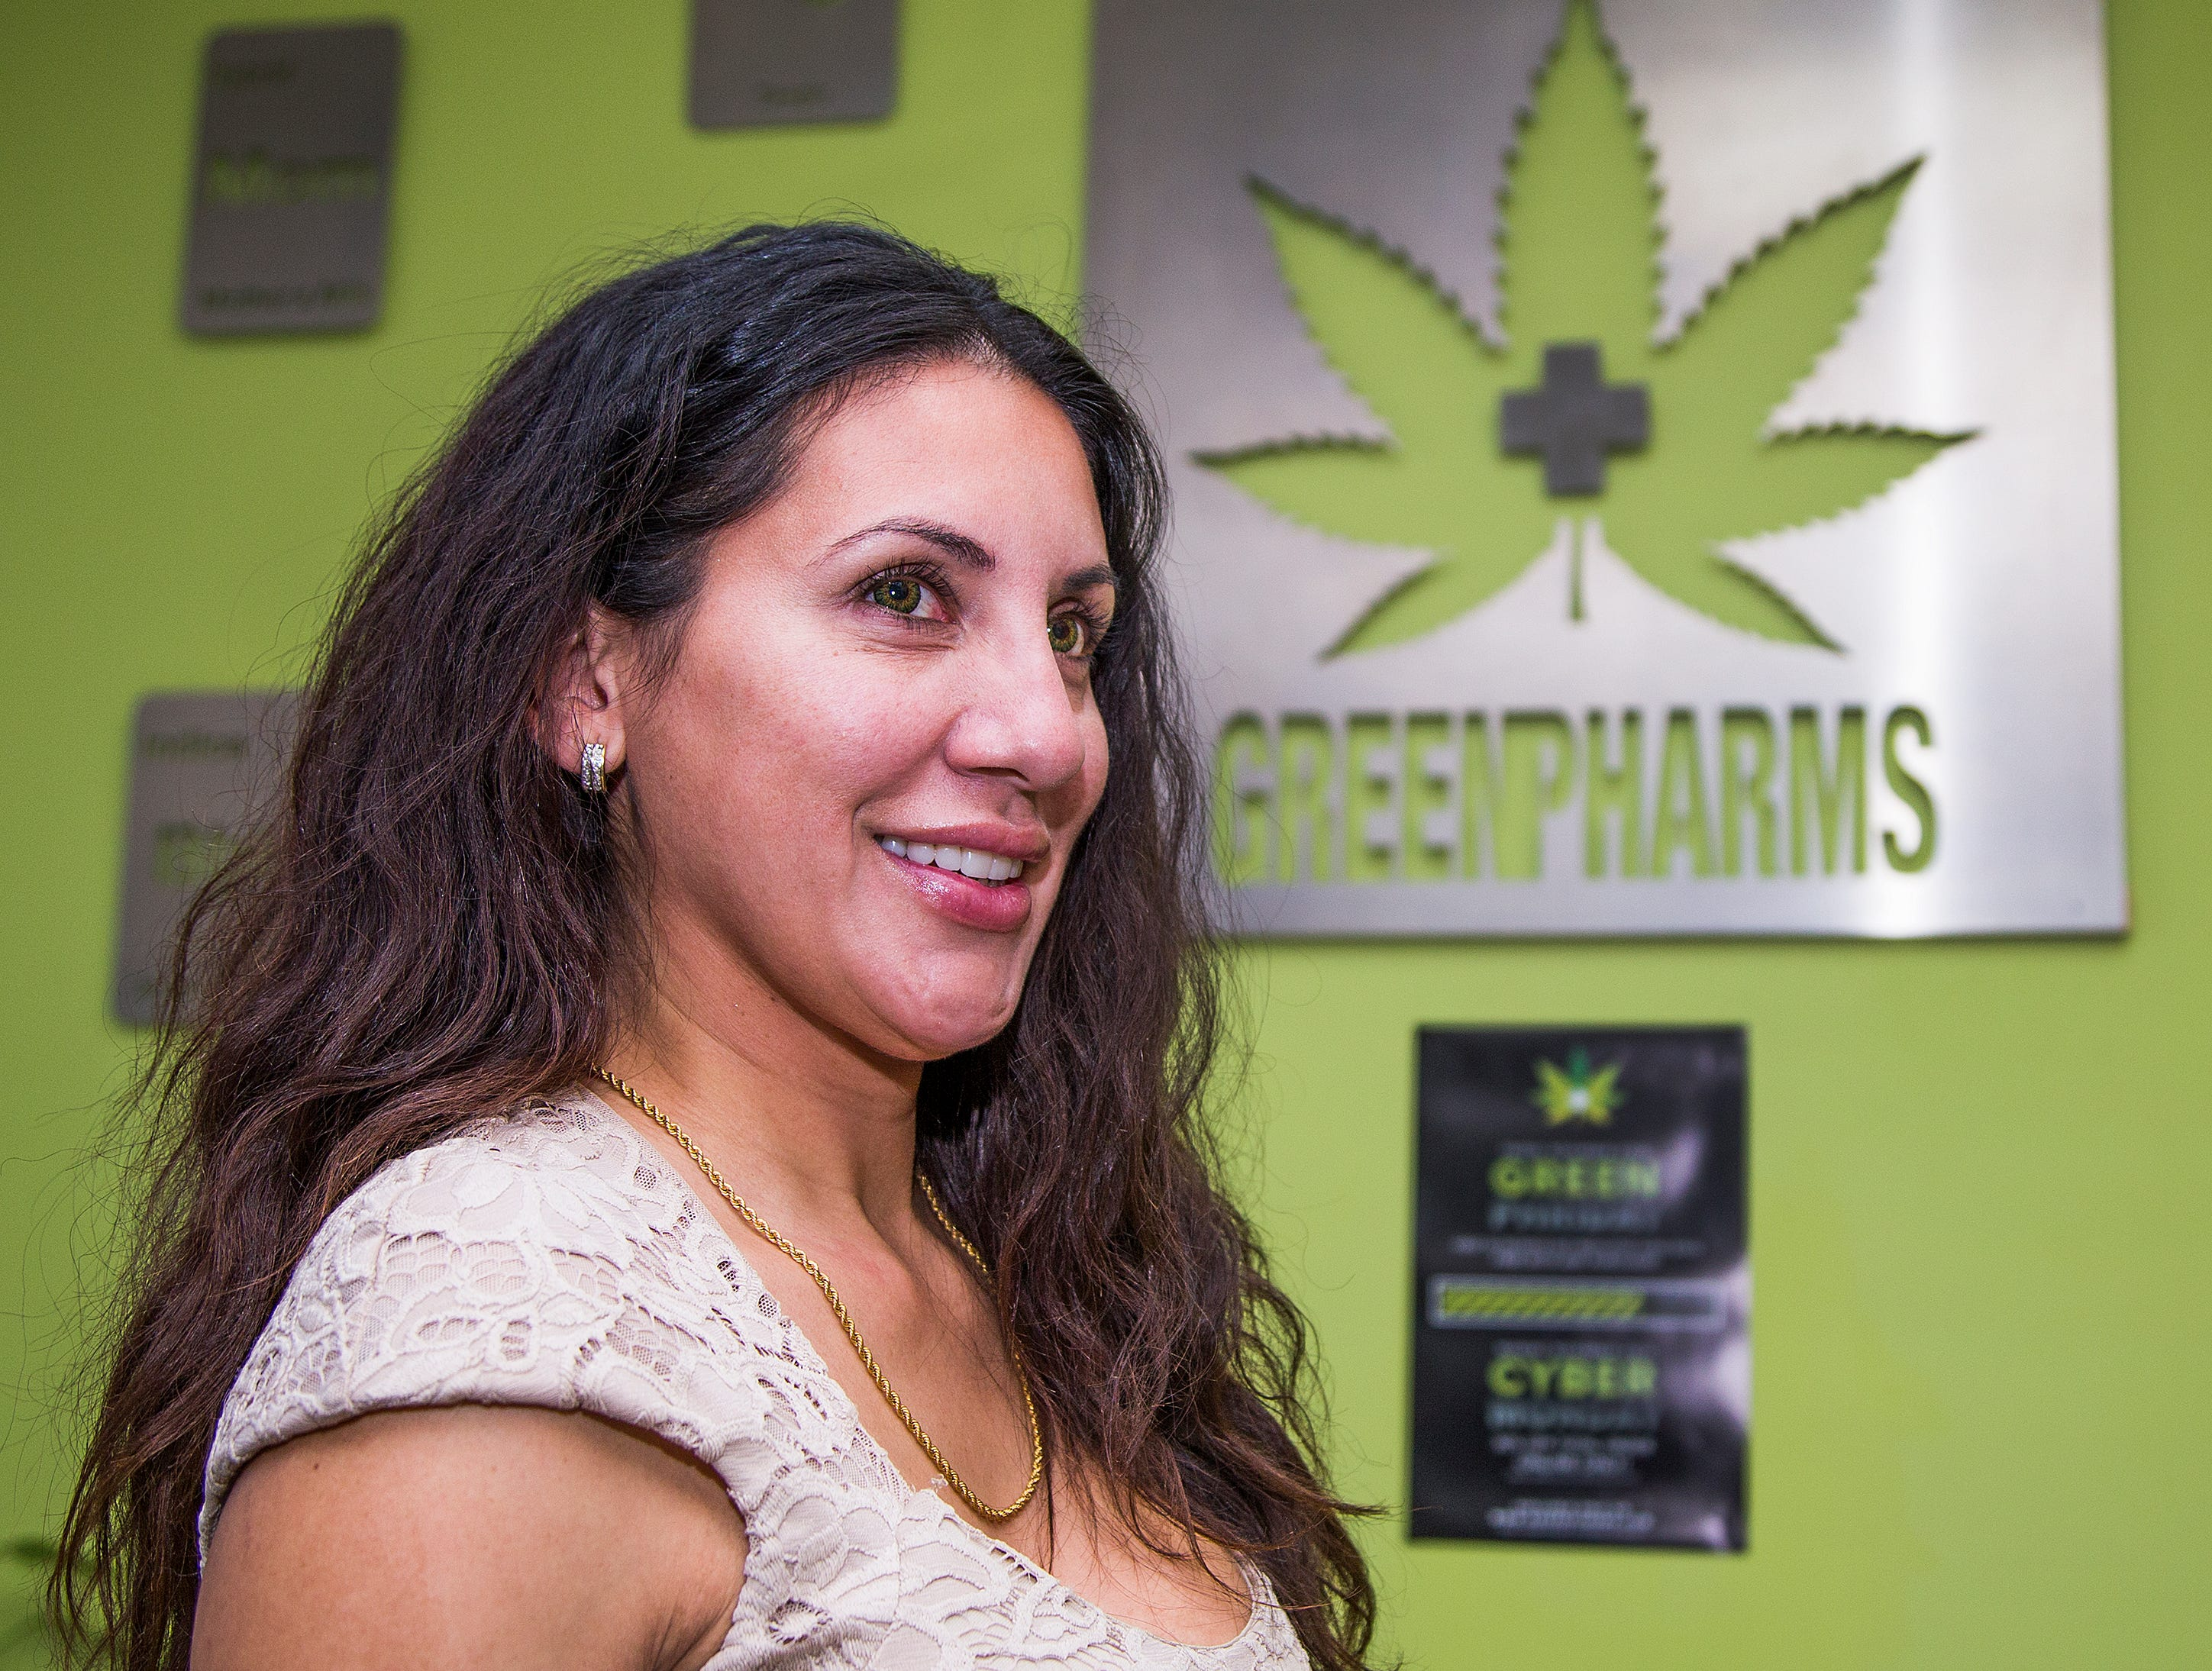 Marie Paredes Saloum, owner of the GreenPharms Dispensary, in her store in Mesa on Nov. 13, 2018.